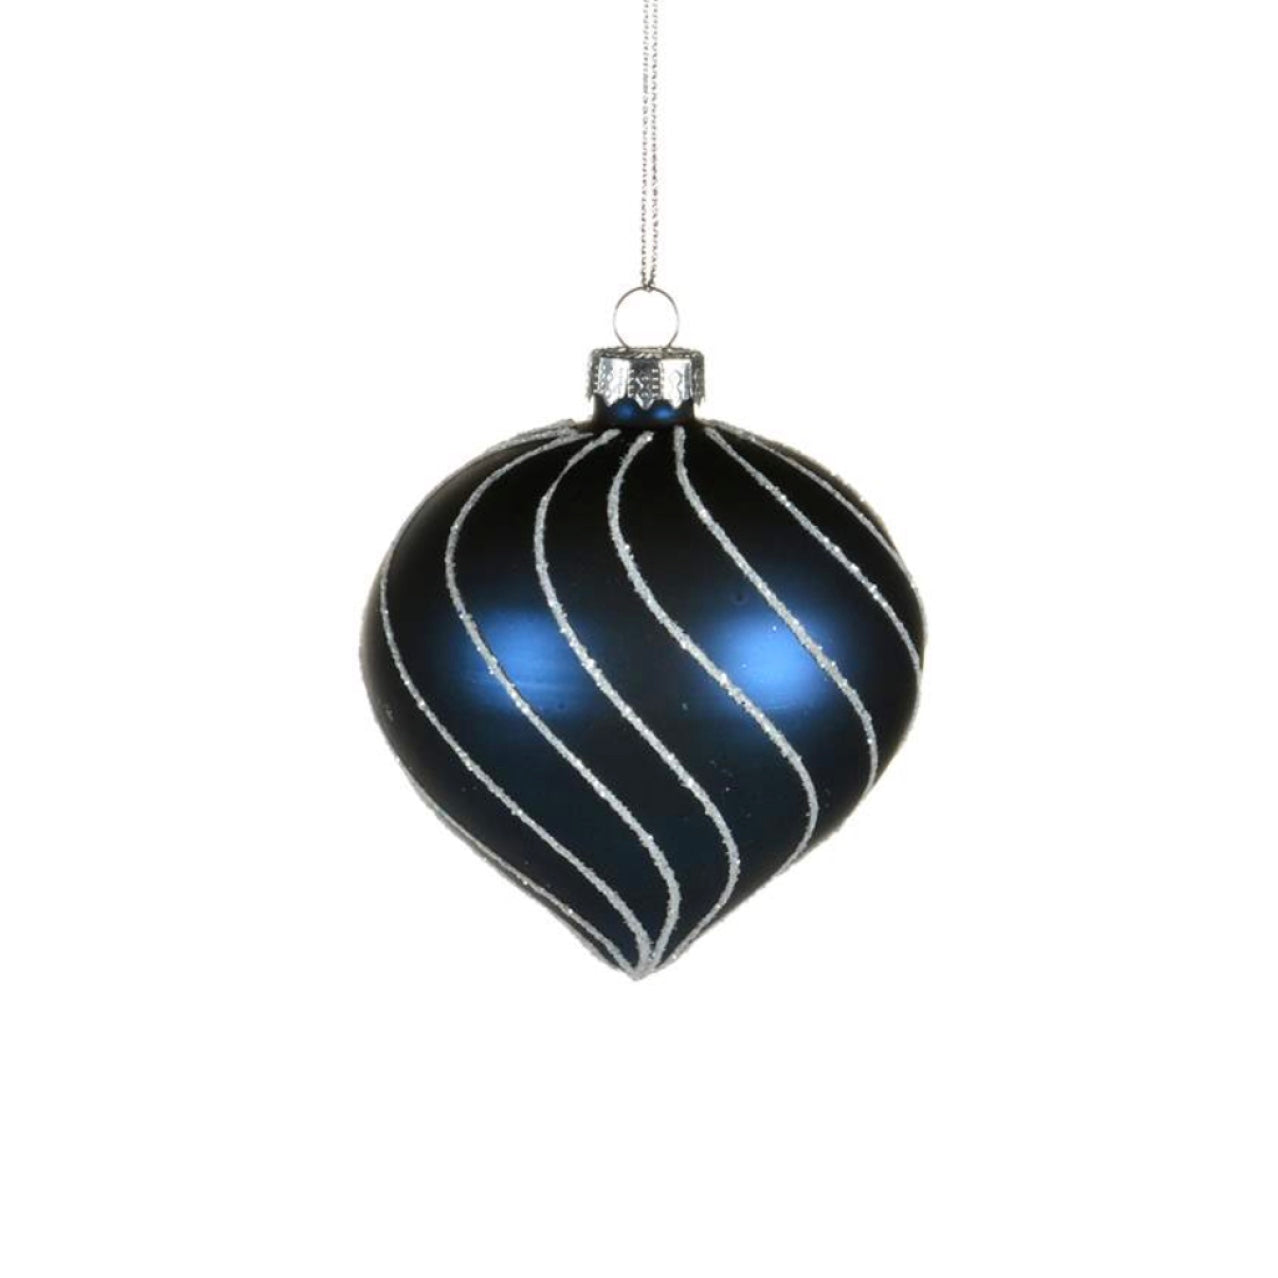 Navy Glass Ornament with Silver Glitter Swirls - Onion